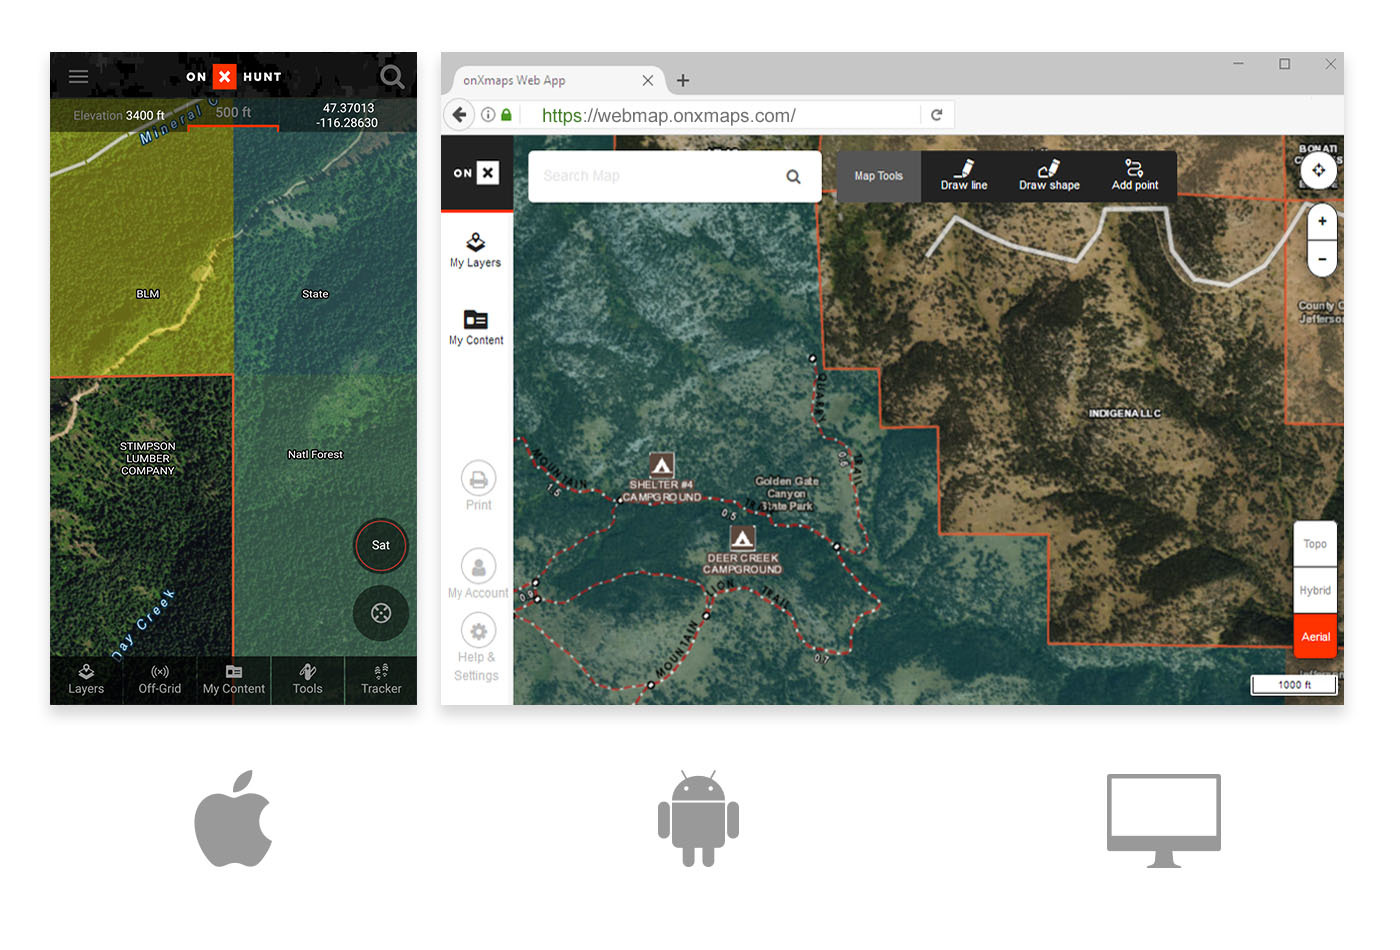 Georgia Hunting Maps Mobile And Computer App GPS Chip OnX - Georgia map games